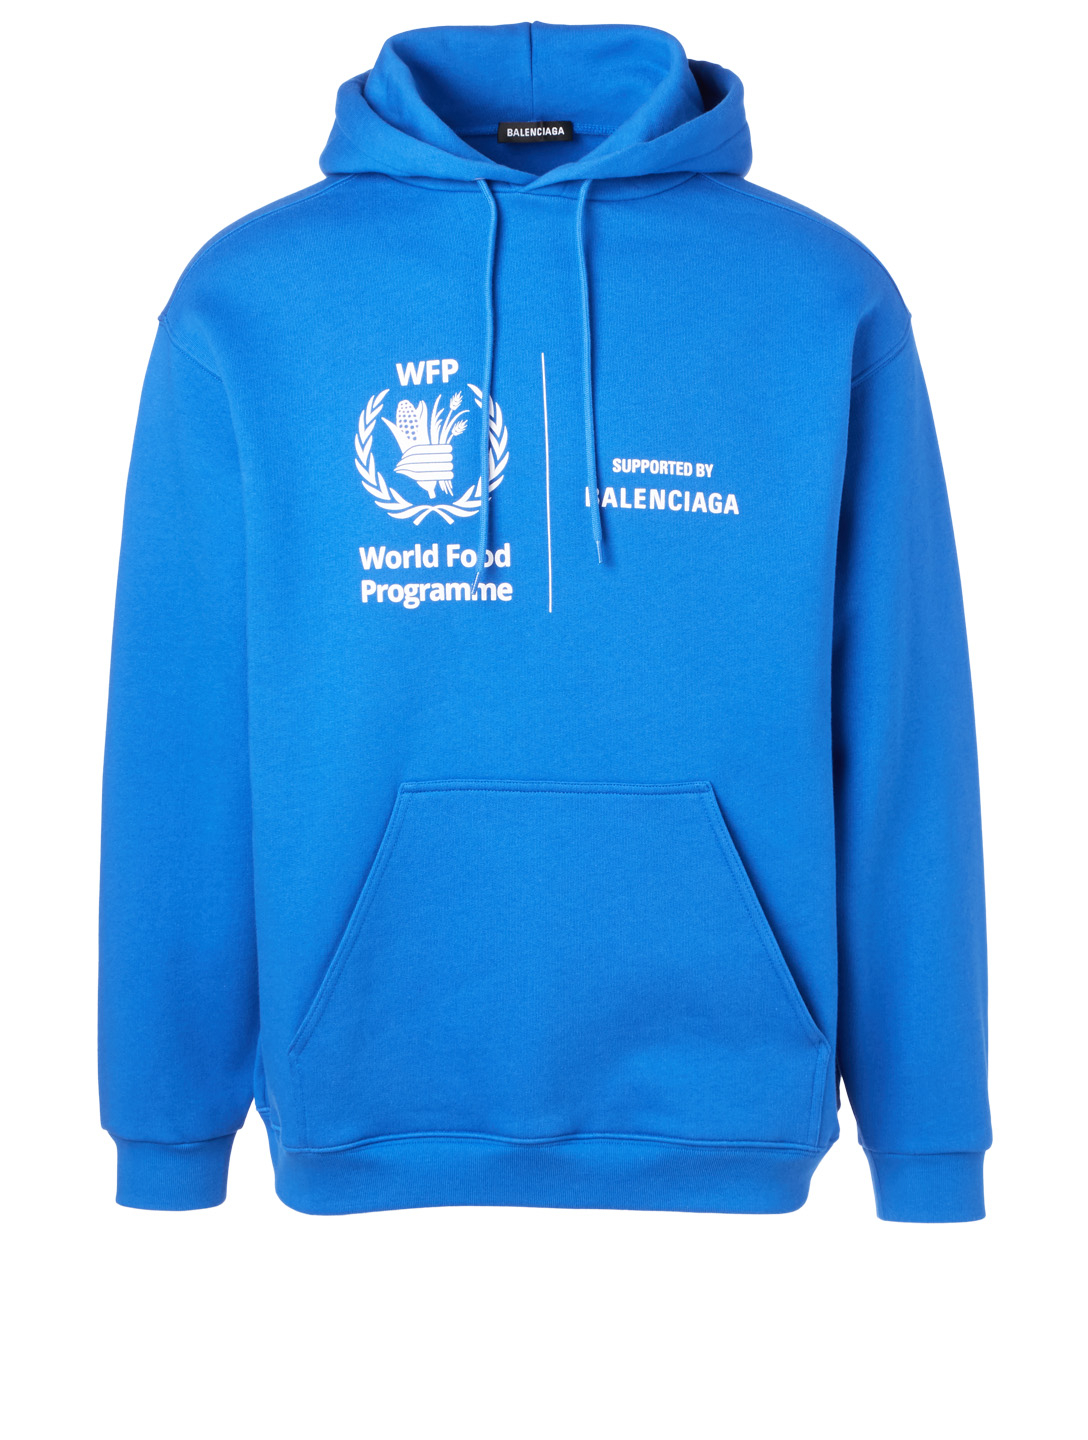 Balenciaga World Food Programme Cotton Hoodie Holt Renfrew